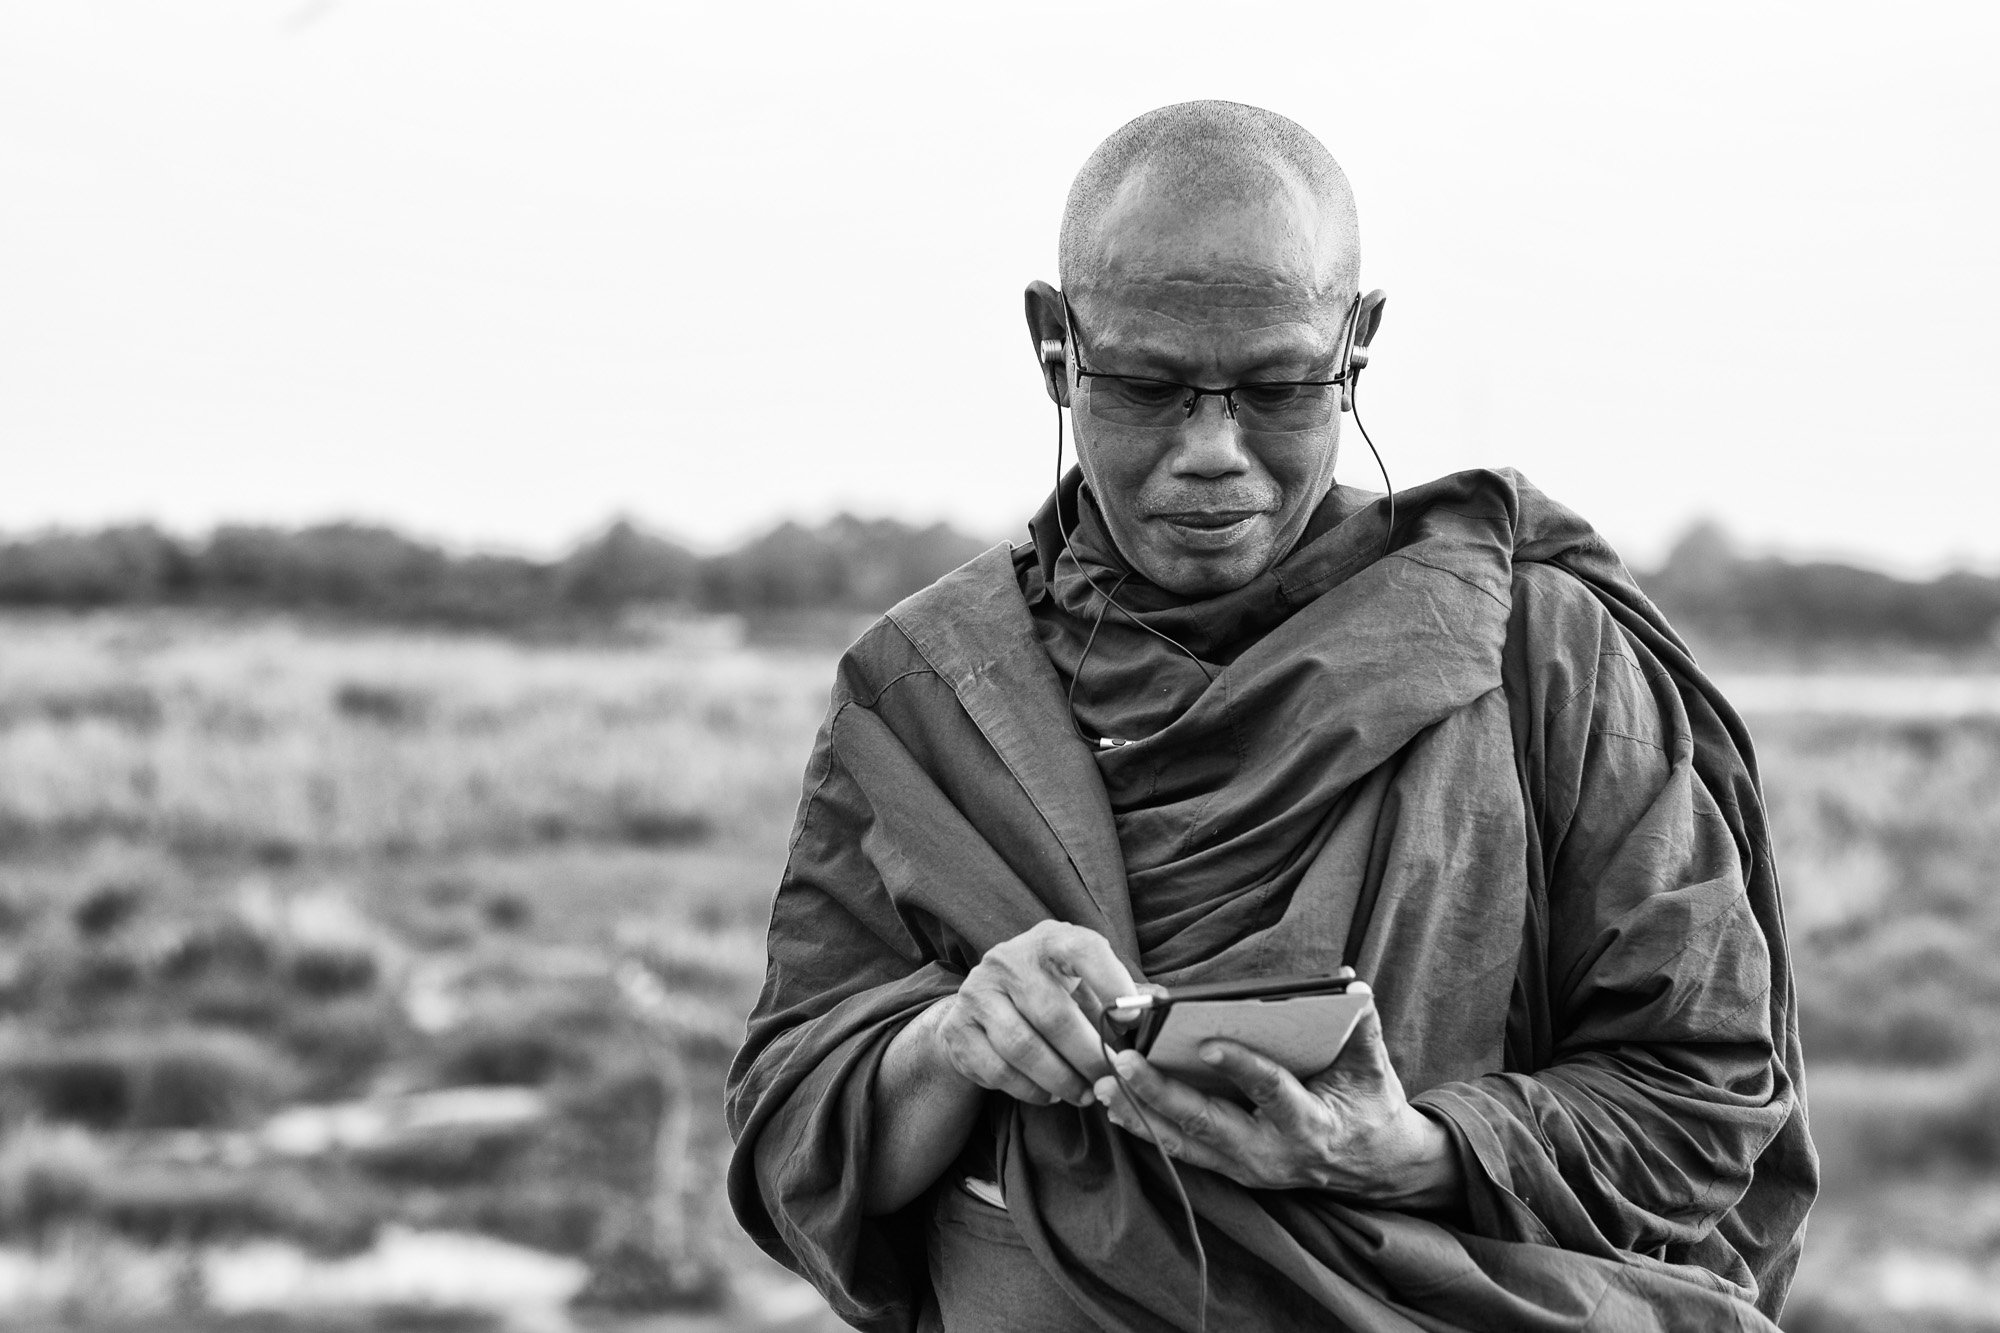 buddhist monk VIENTIANE Laos asia street photography photographer